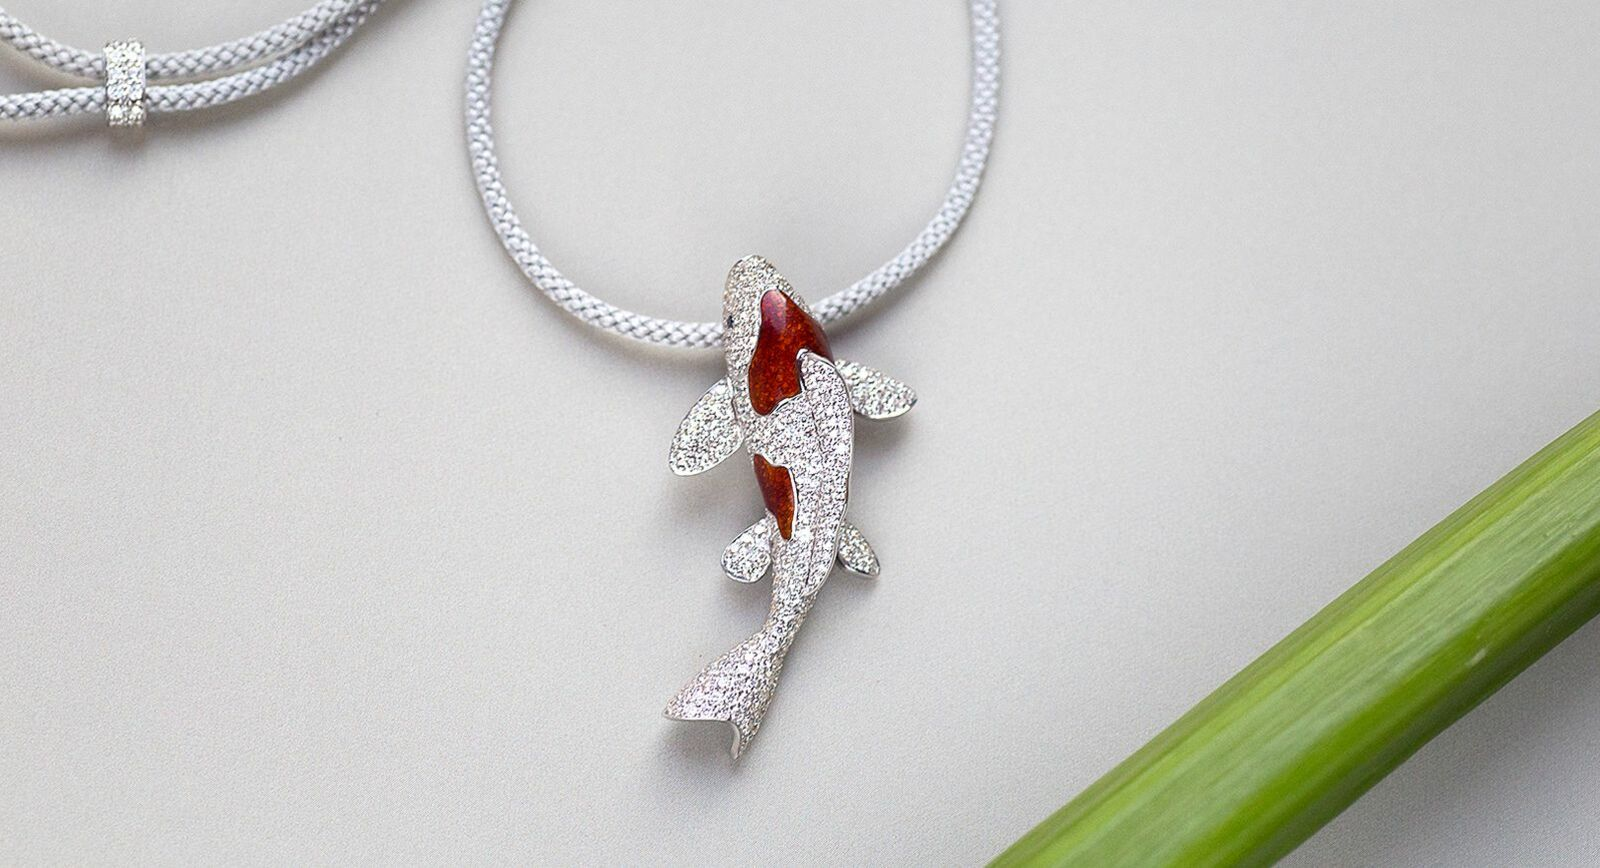 Ilgiz F Mysterious China diamond koi carp necklace